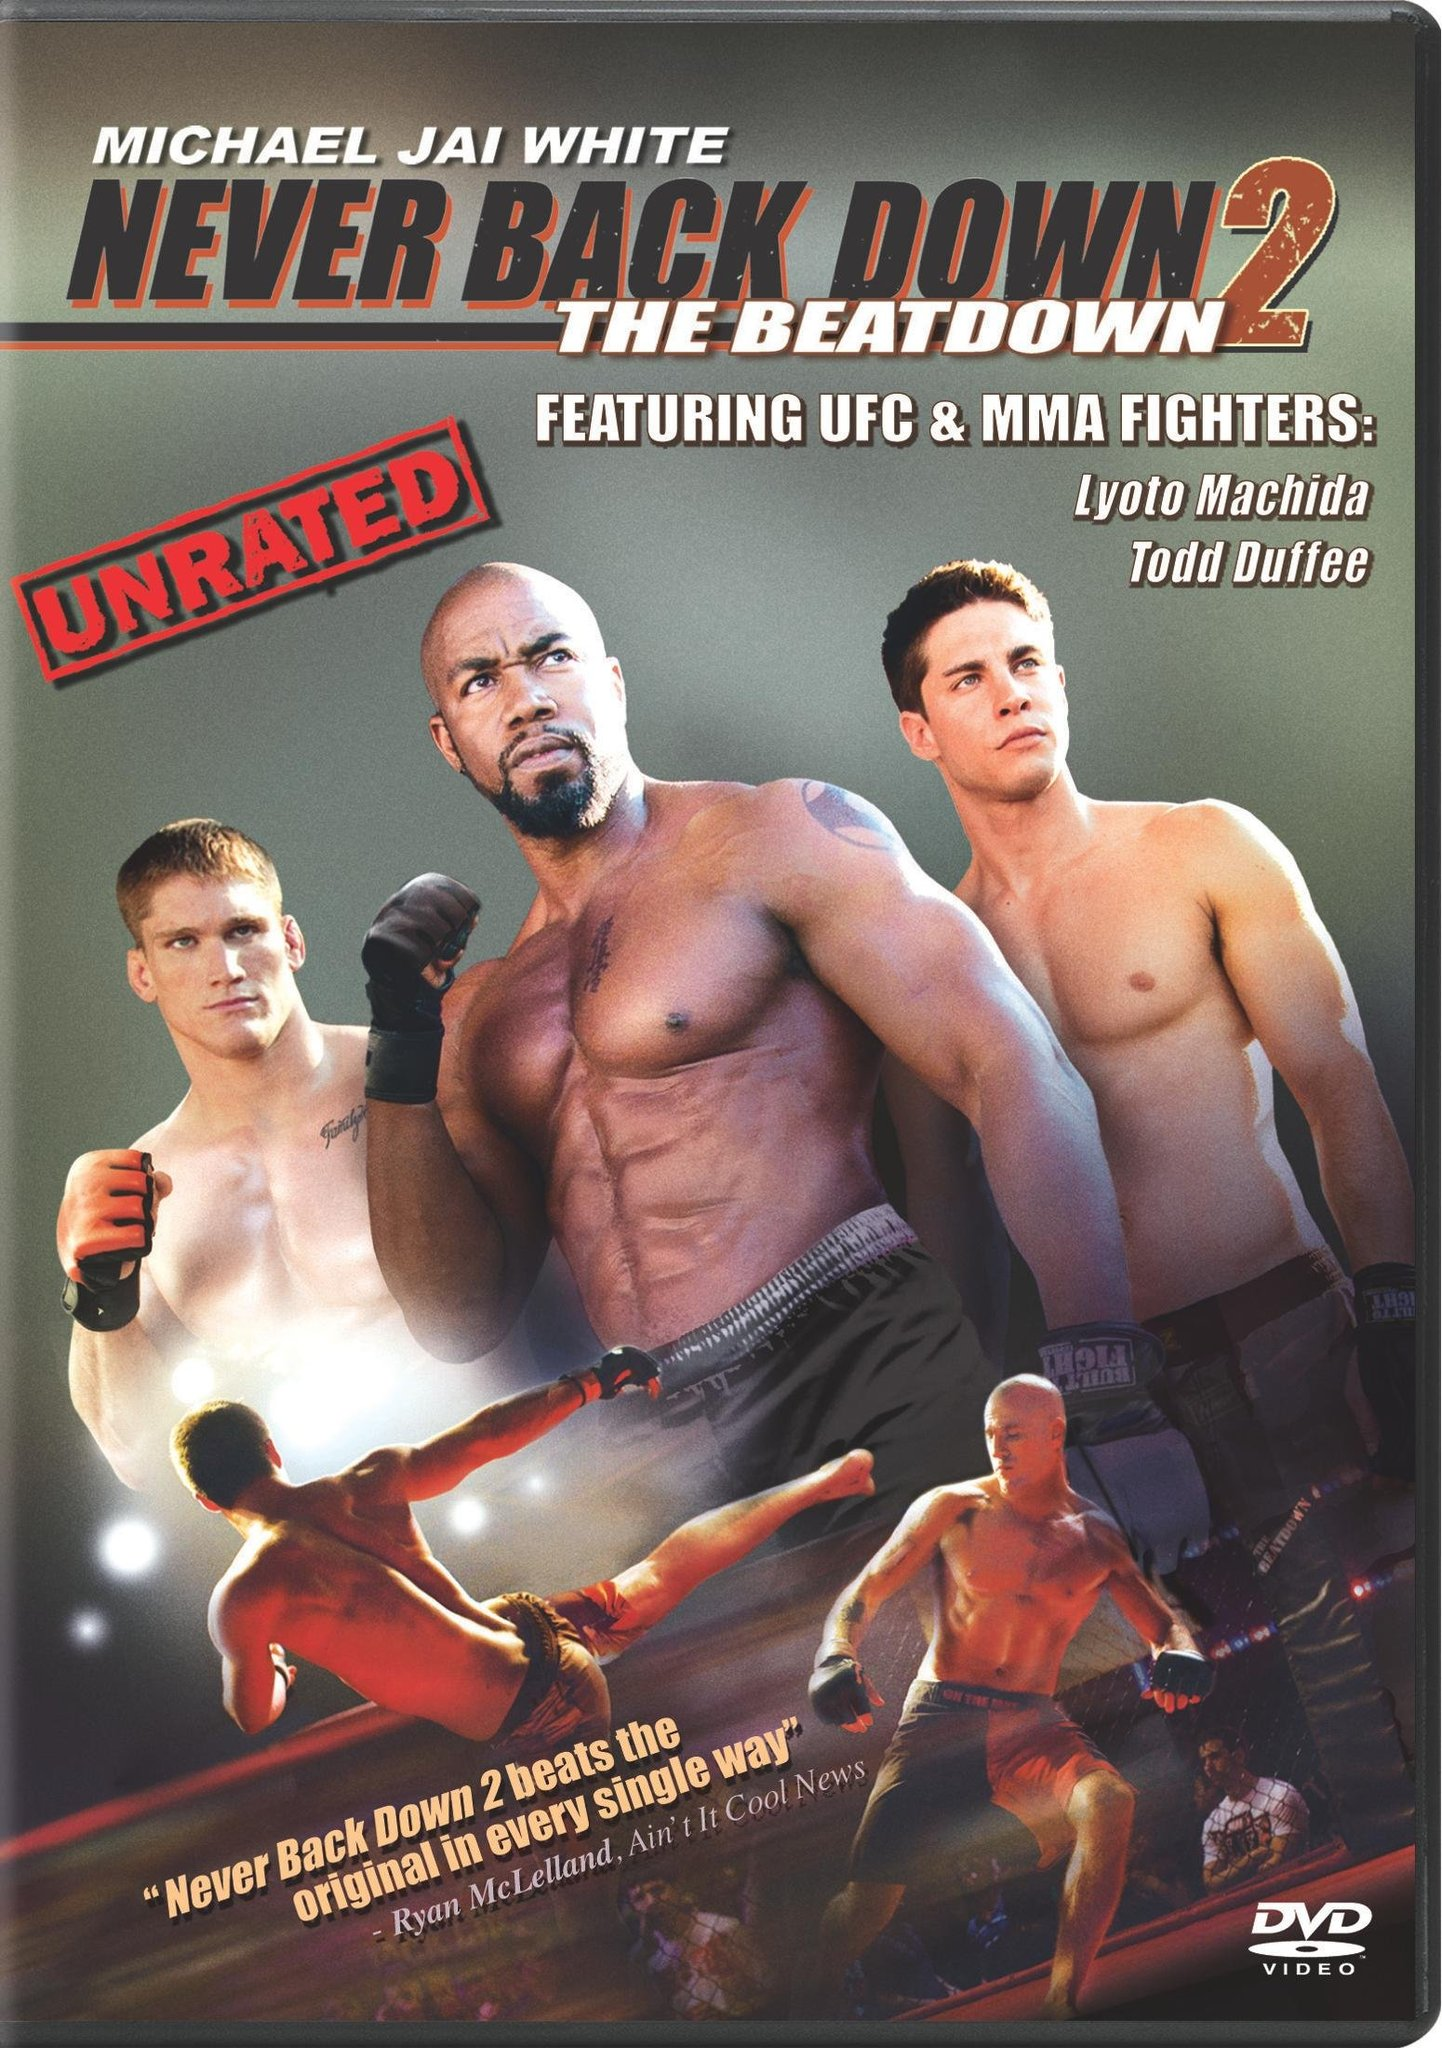 never back down 2 movie free download in tamil